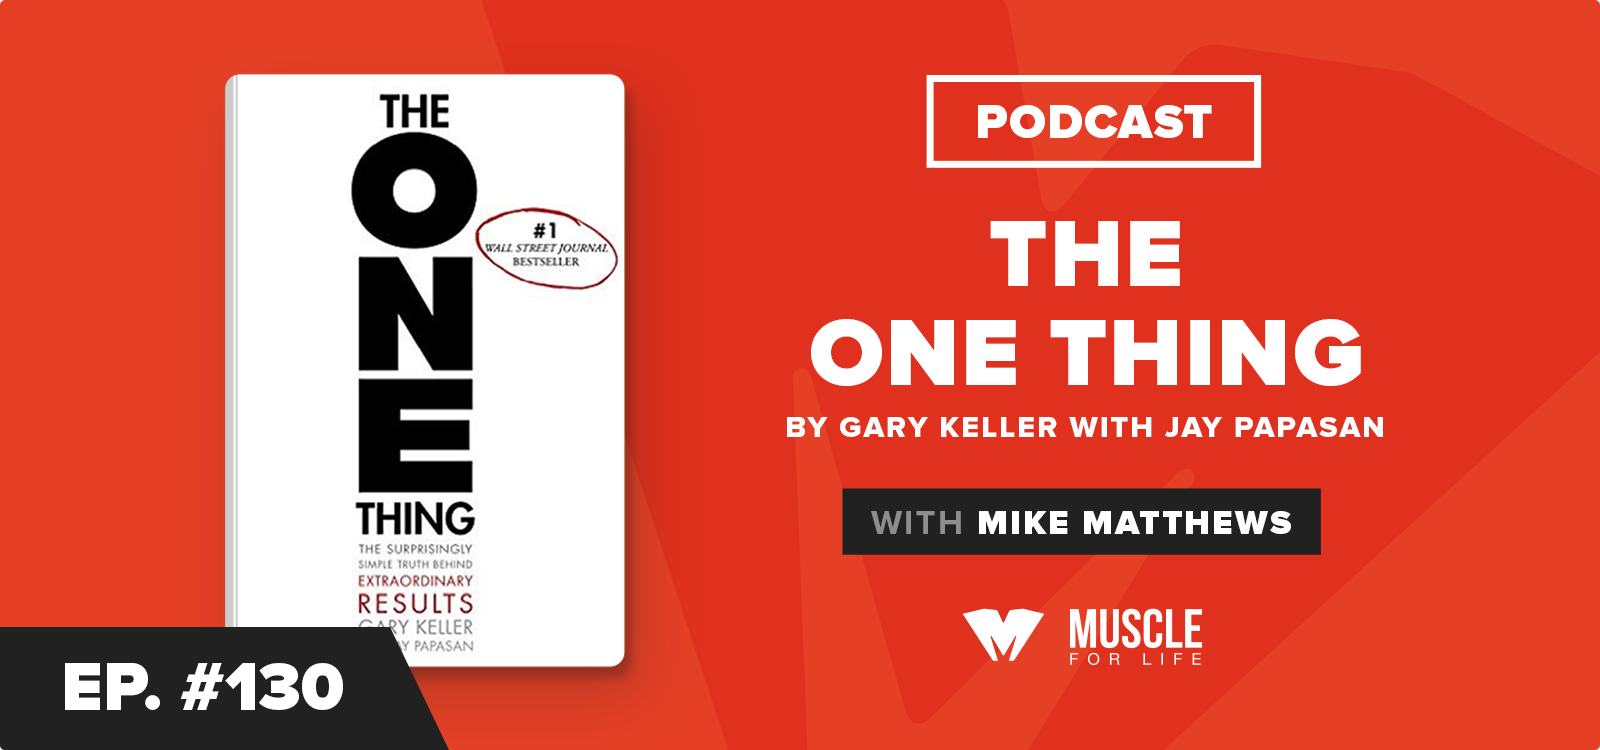 MFL Book Club Podcast: The ONE Thing by Gary Keller and Jay Papasan